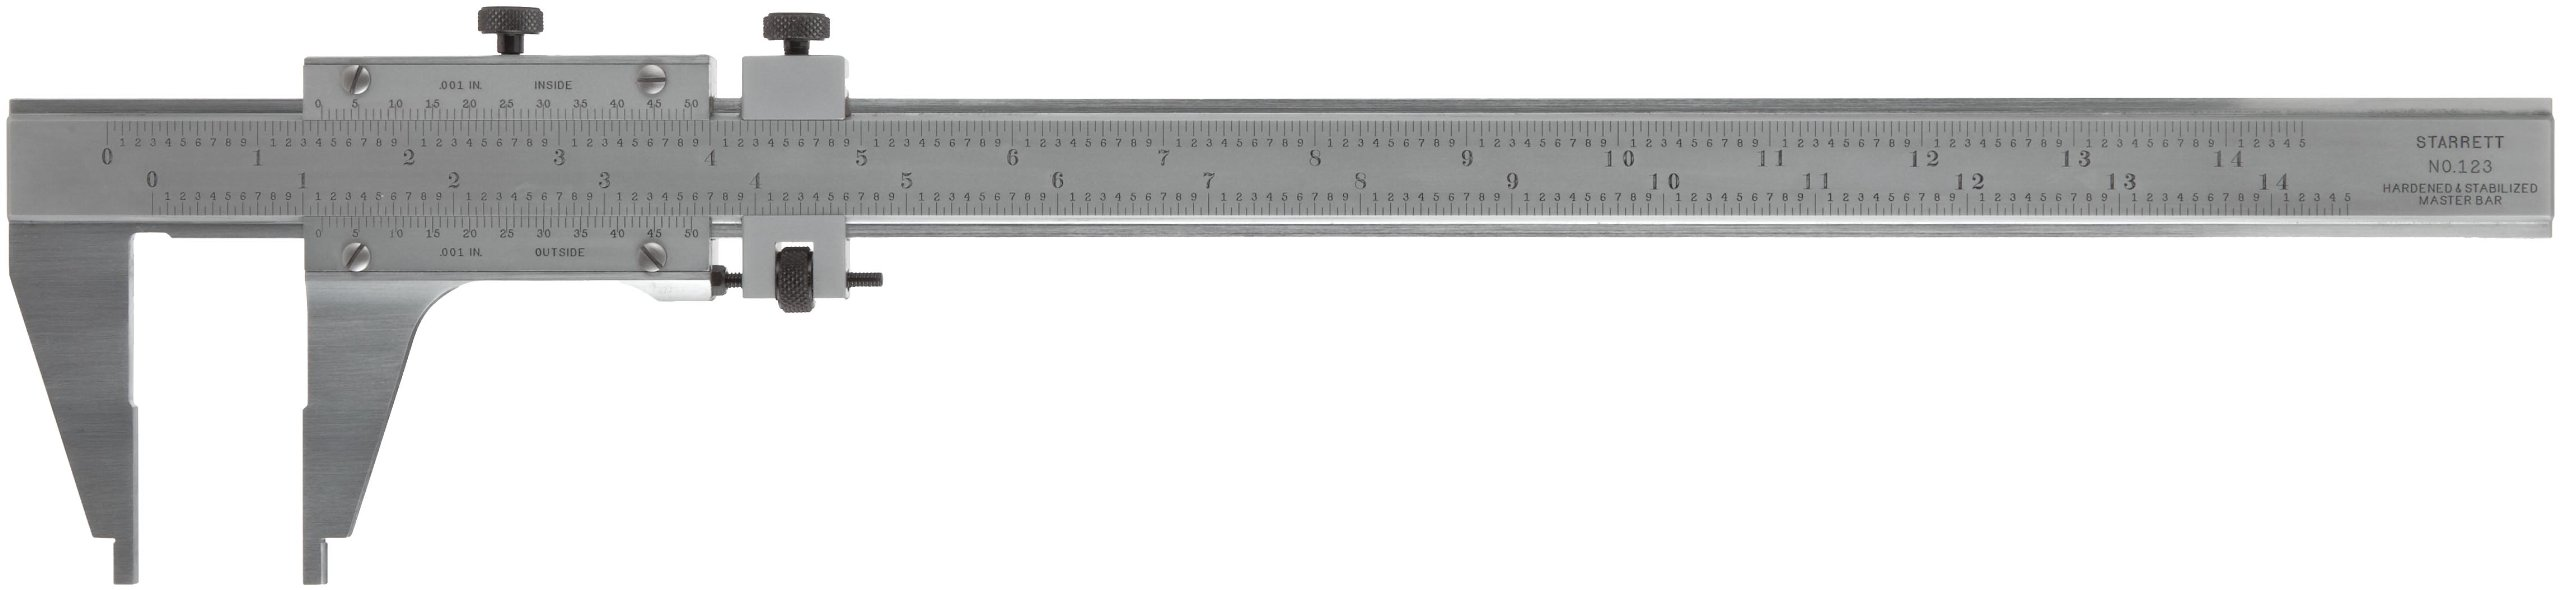 Starrett 123Z-12 W/SLC Vernier Caliper, Steel, Nib Style Jaw, 0-12'' Range, 0.001'' Resolution